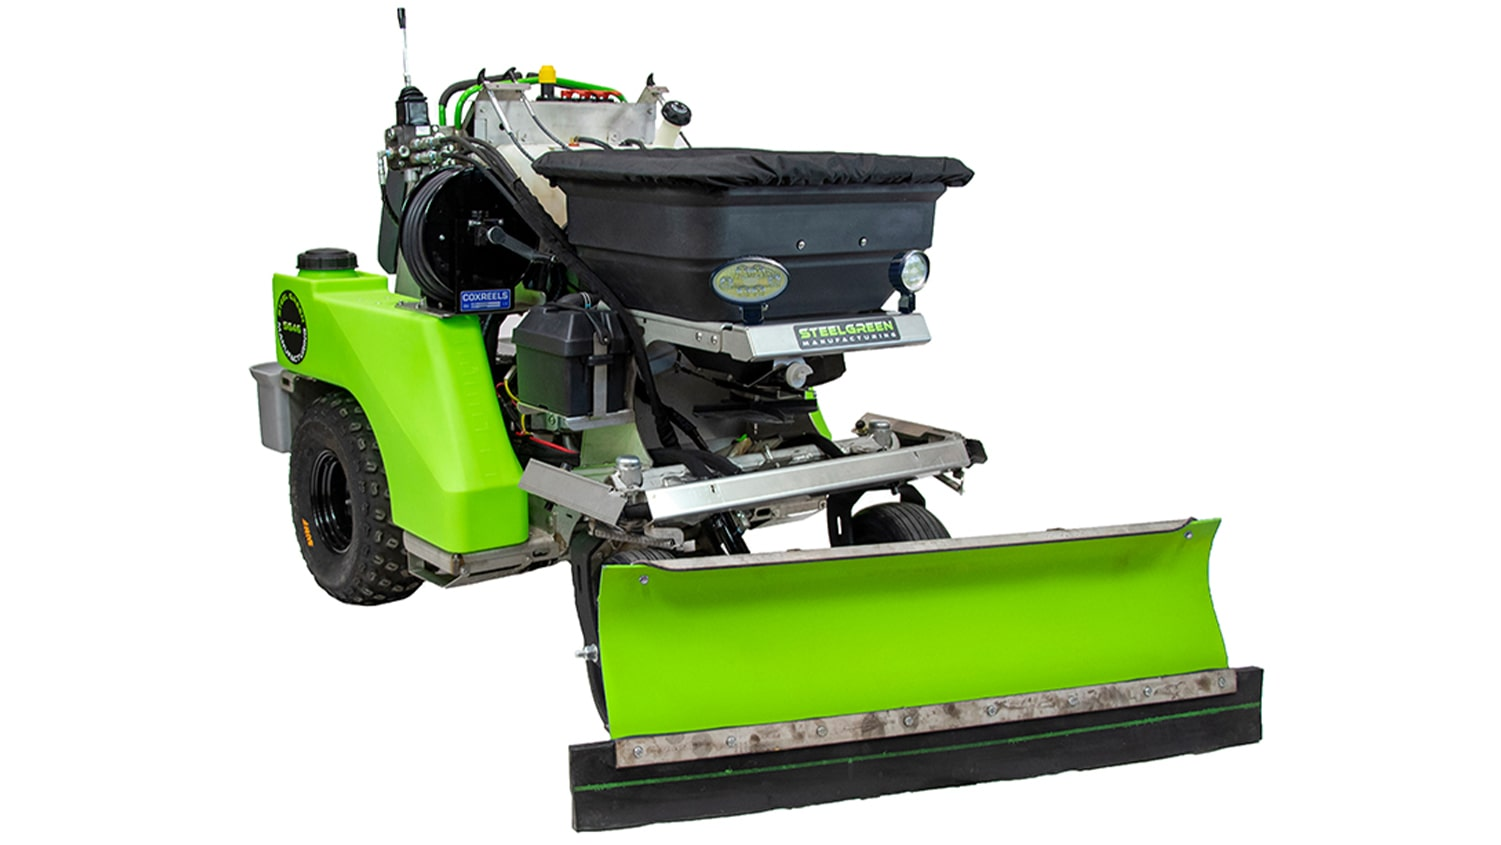 steel green manufacturing spreader-sprayer with snowplow attachment